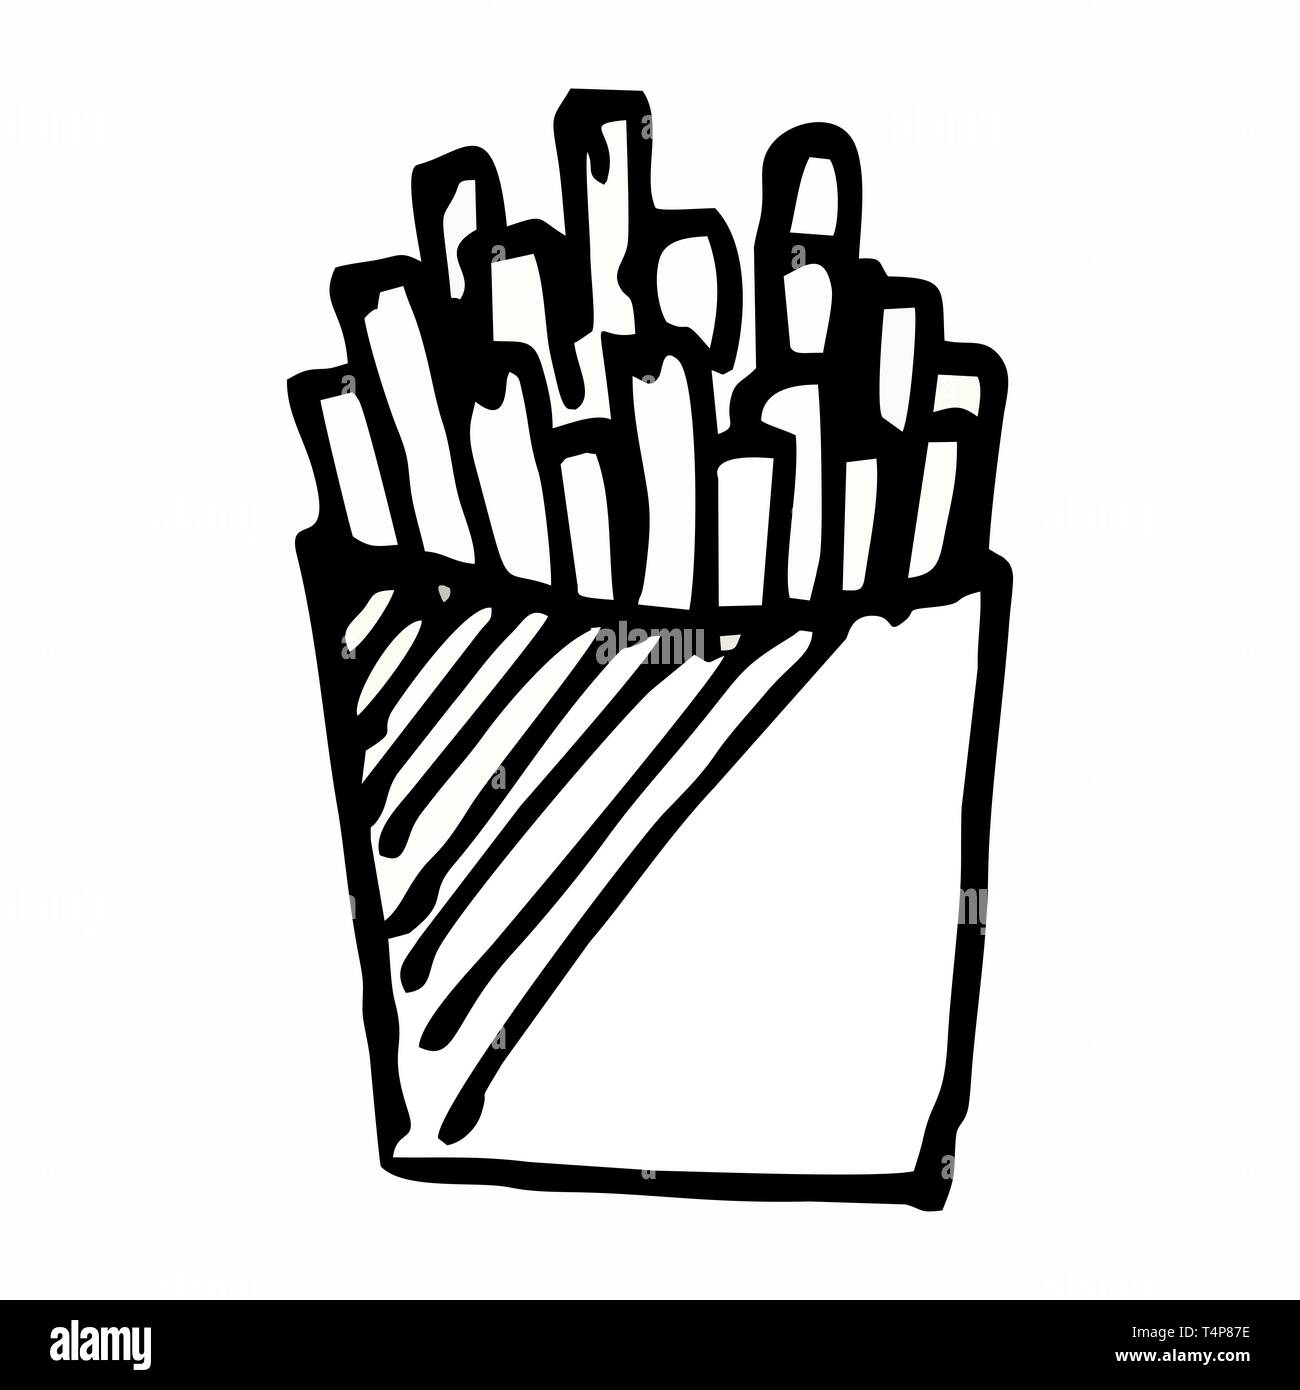 French Fries hand drawn illustration. Black outlines on white background. - Stock Vector